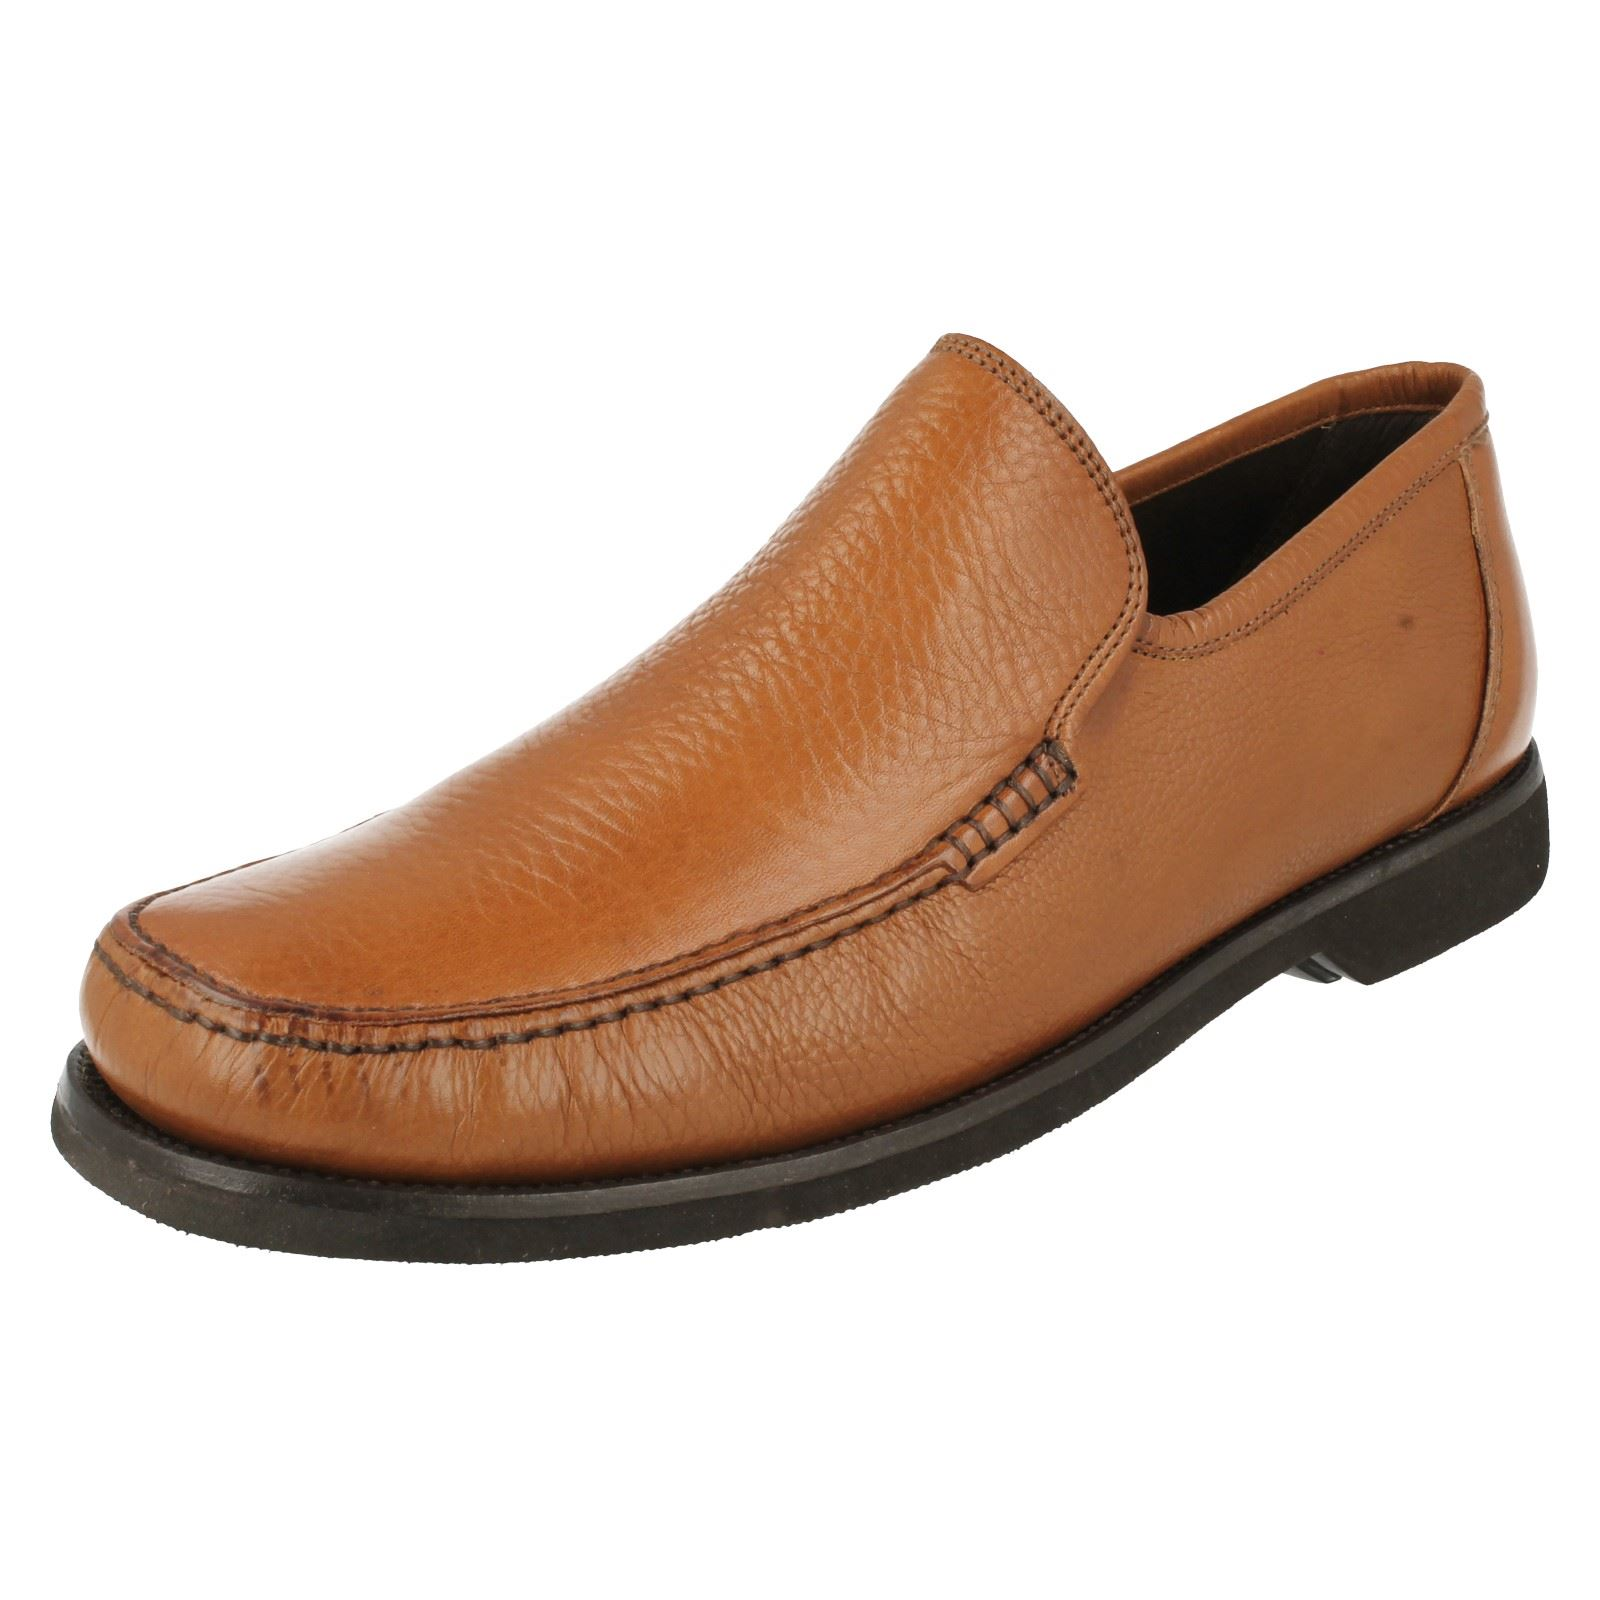 Herren Anatomic Smart Moccasin Schuhes 'Angra' 0f231e